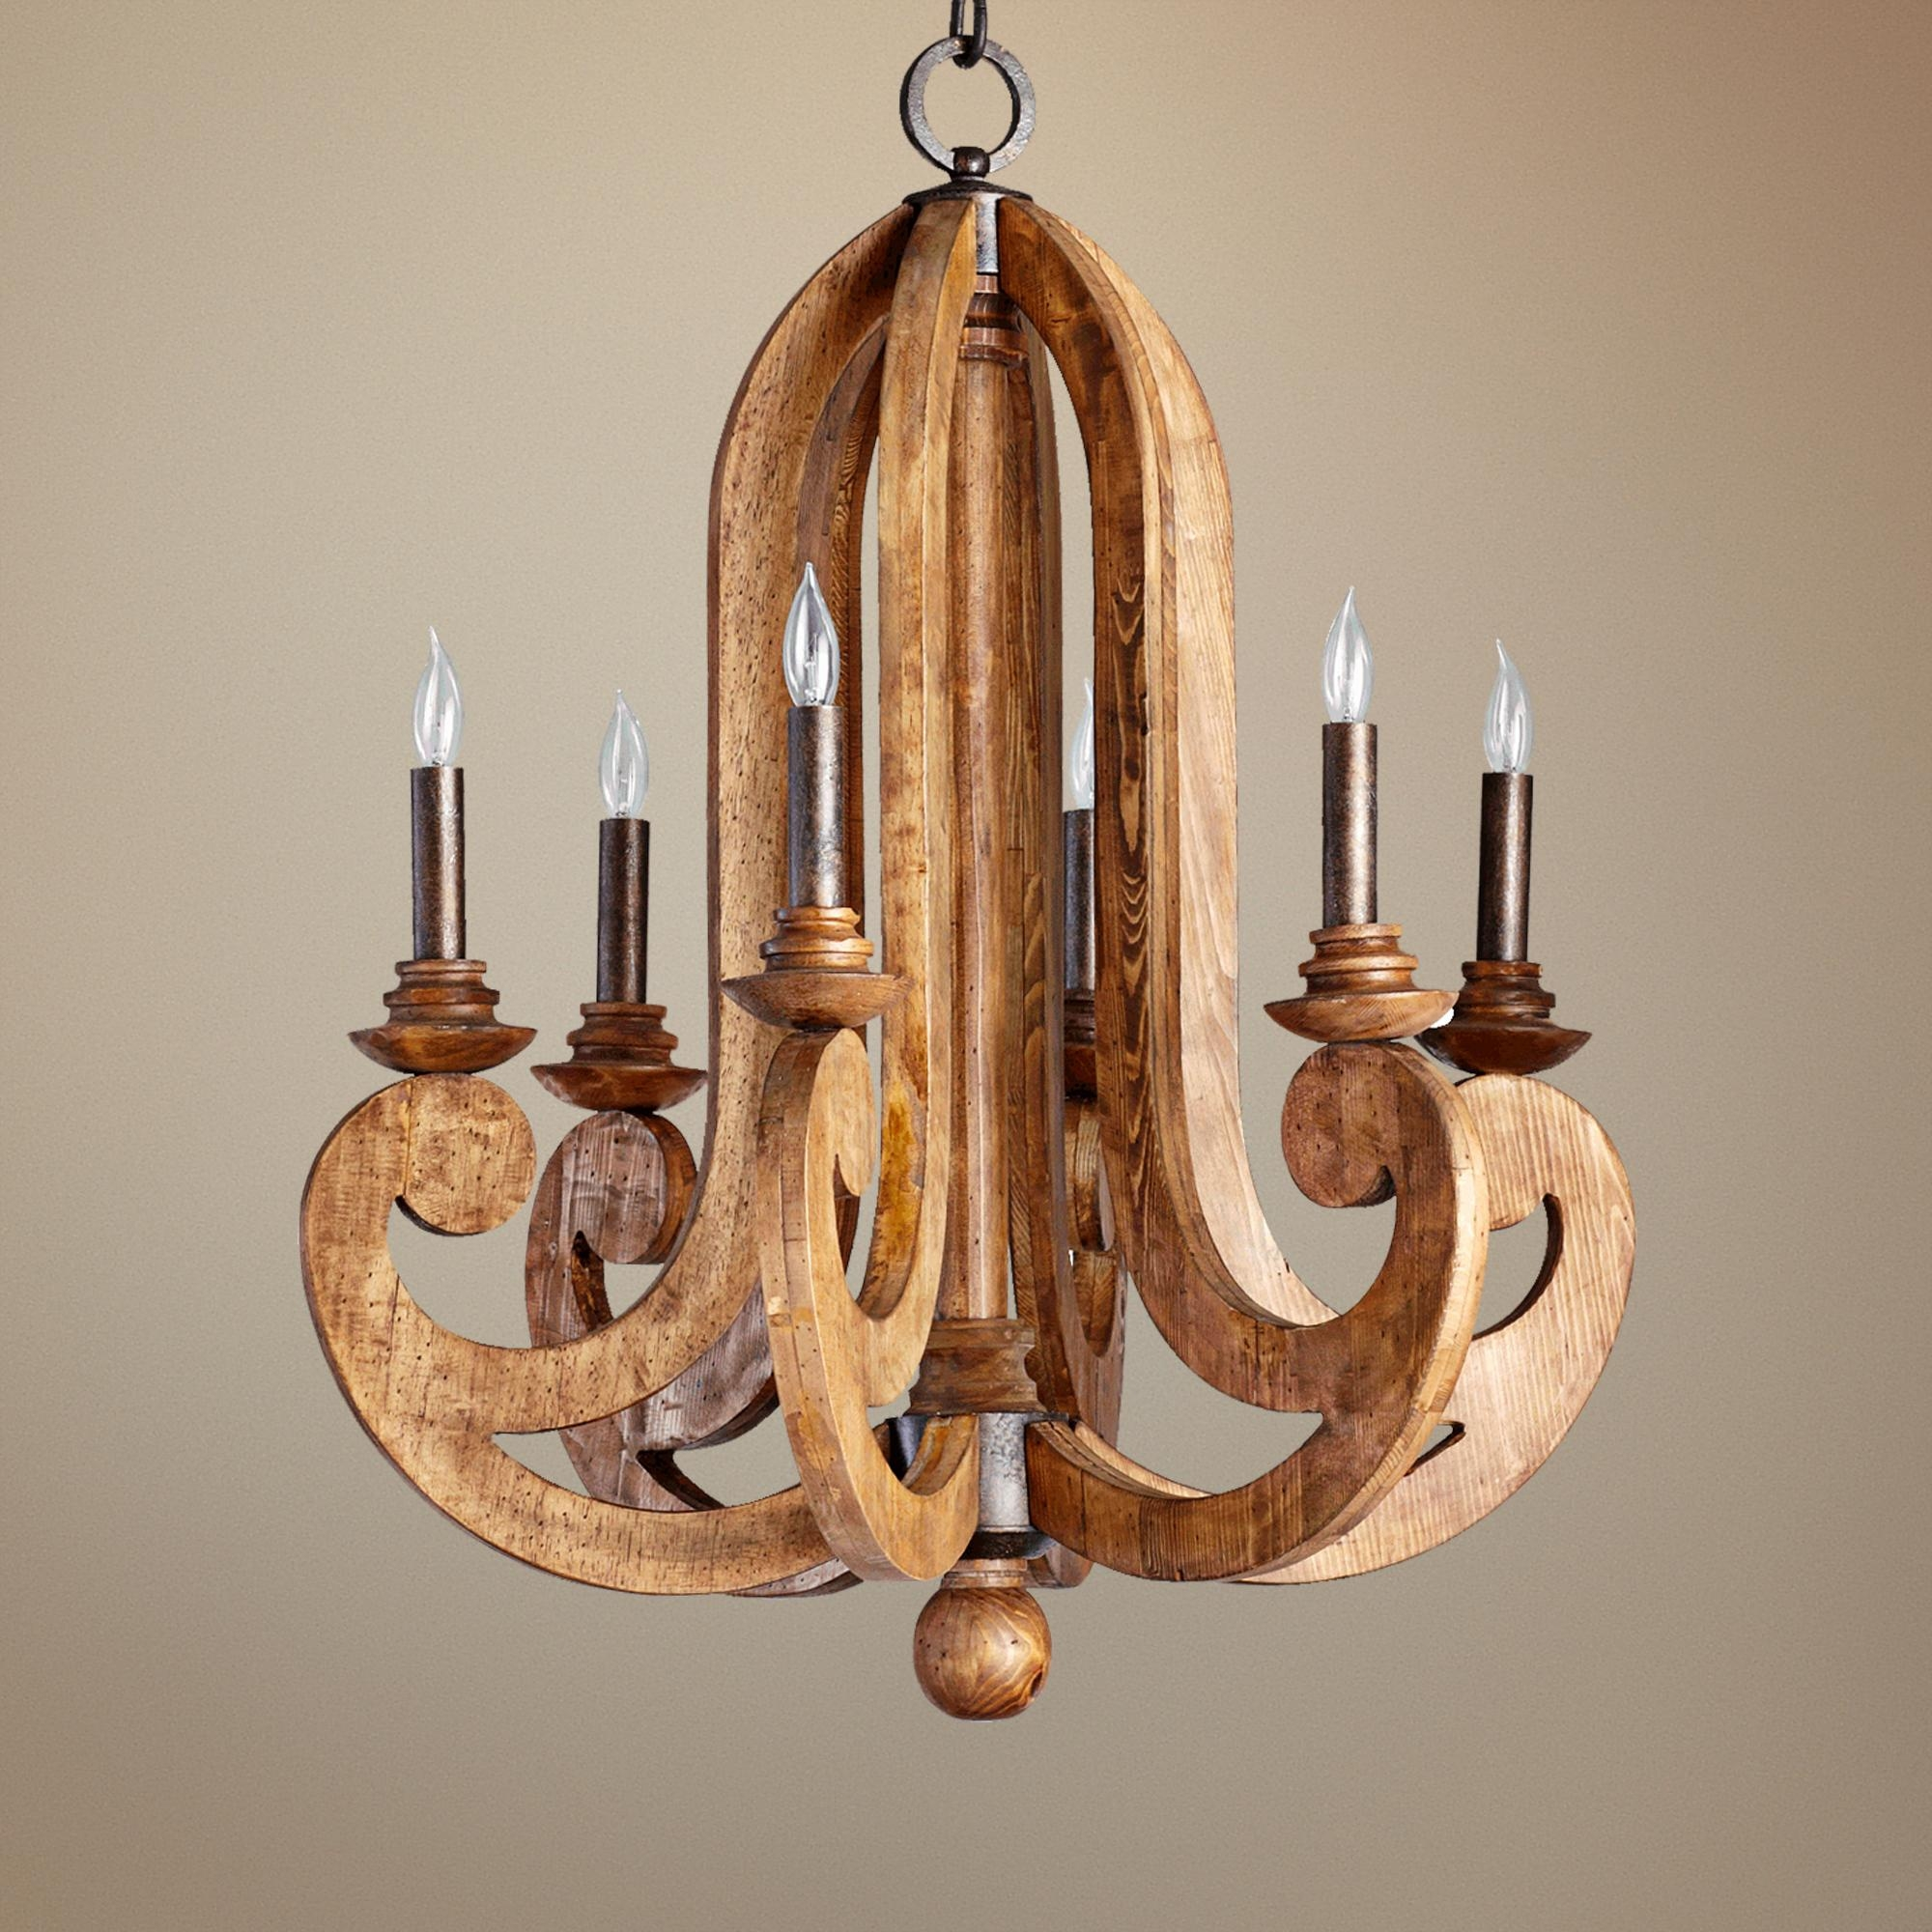 Houten Kroonluchter Koektrommel Wooden Chandelier New Home 3is Throughout Wooden Chandeliers (Image 8 of 15)